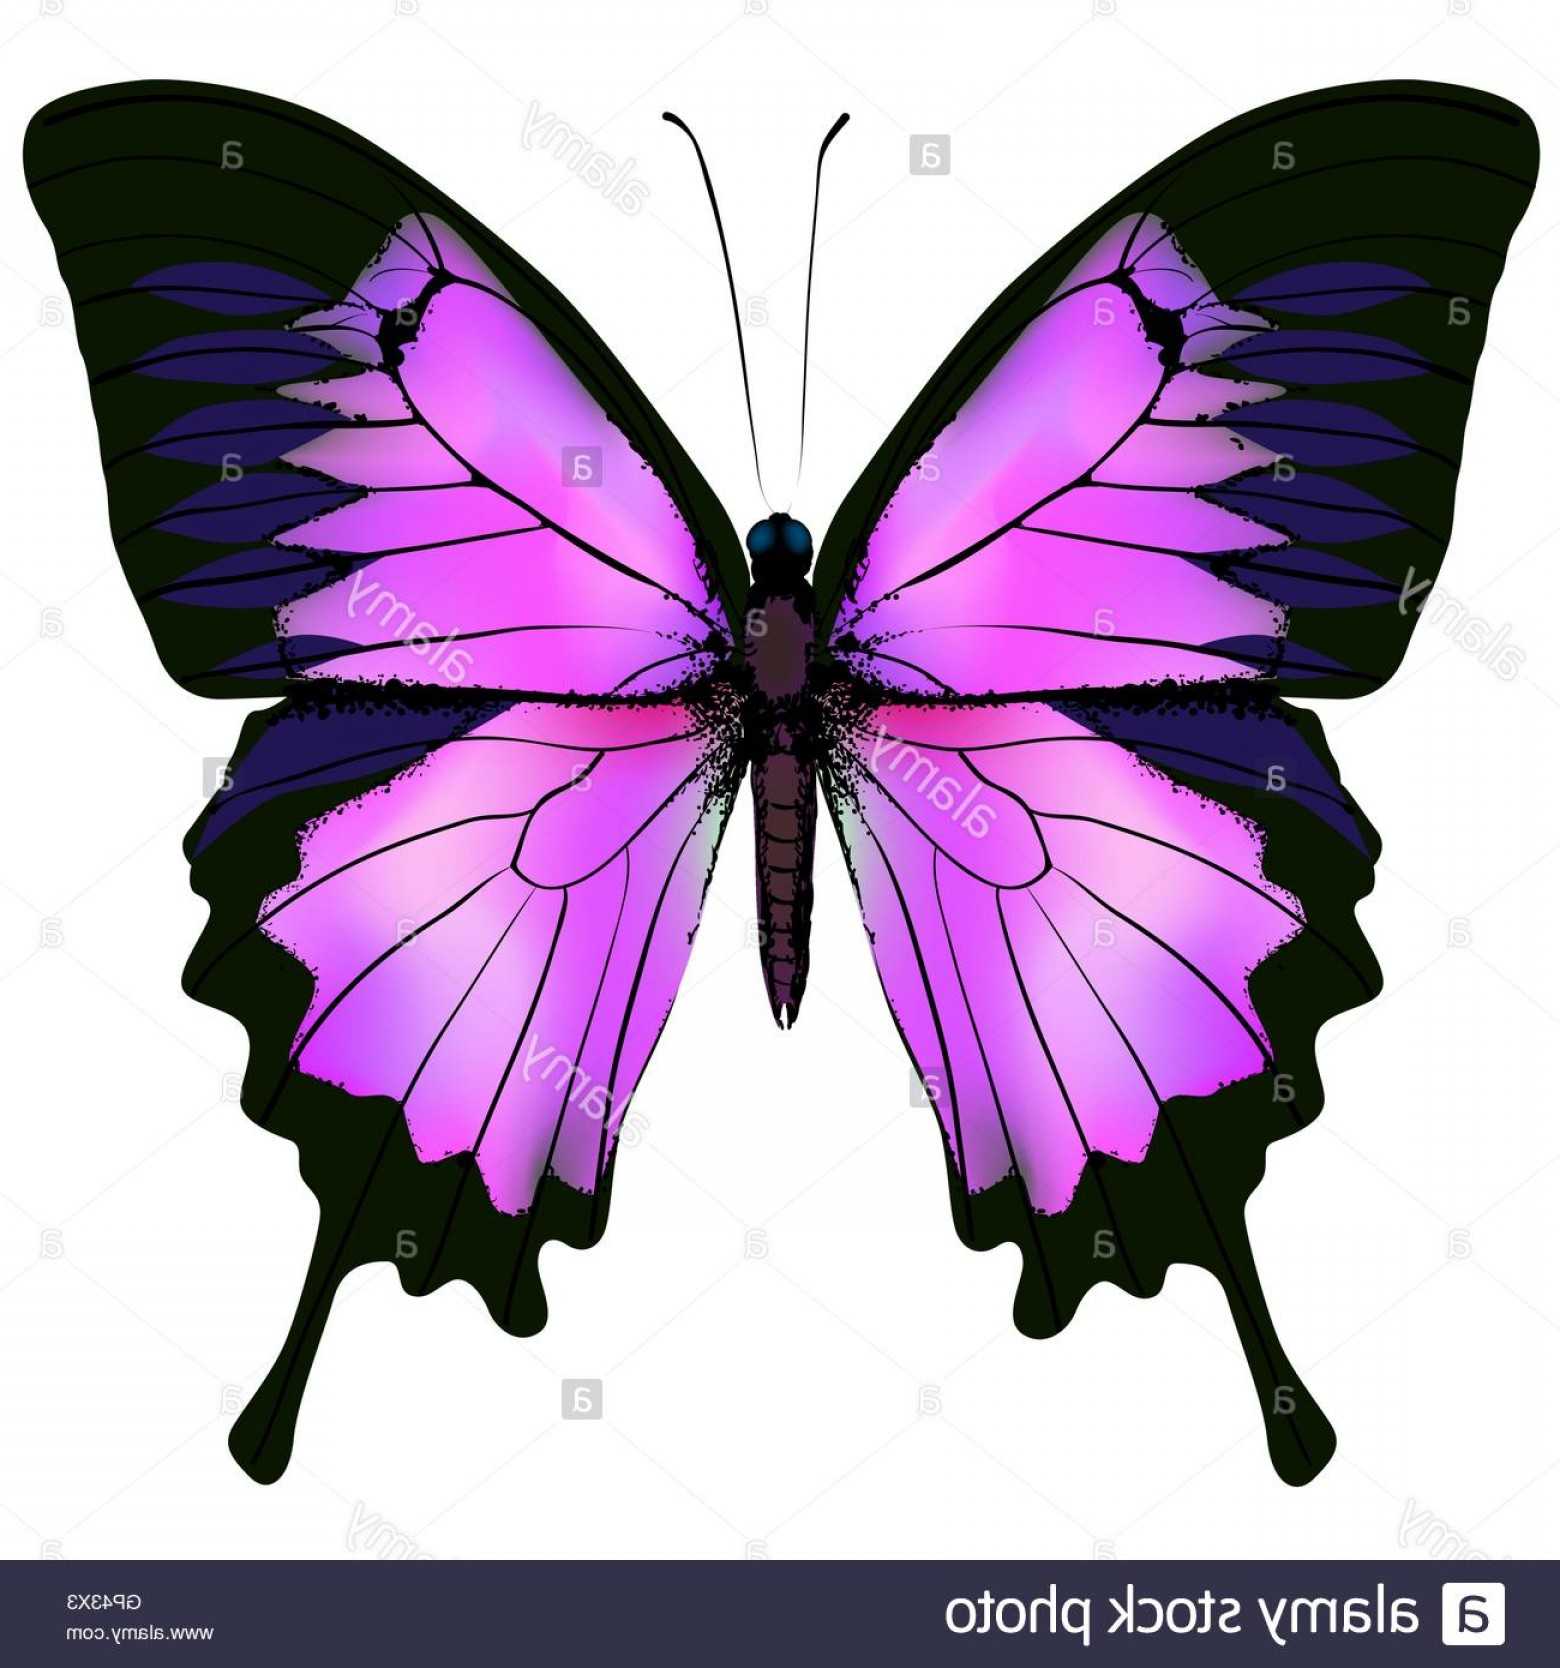 Butterly Vector: Stock Photo Butterfly Vector Illustration Of Beautiful Pink And Purple Color